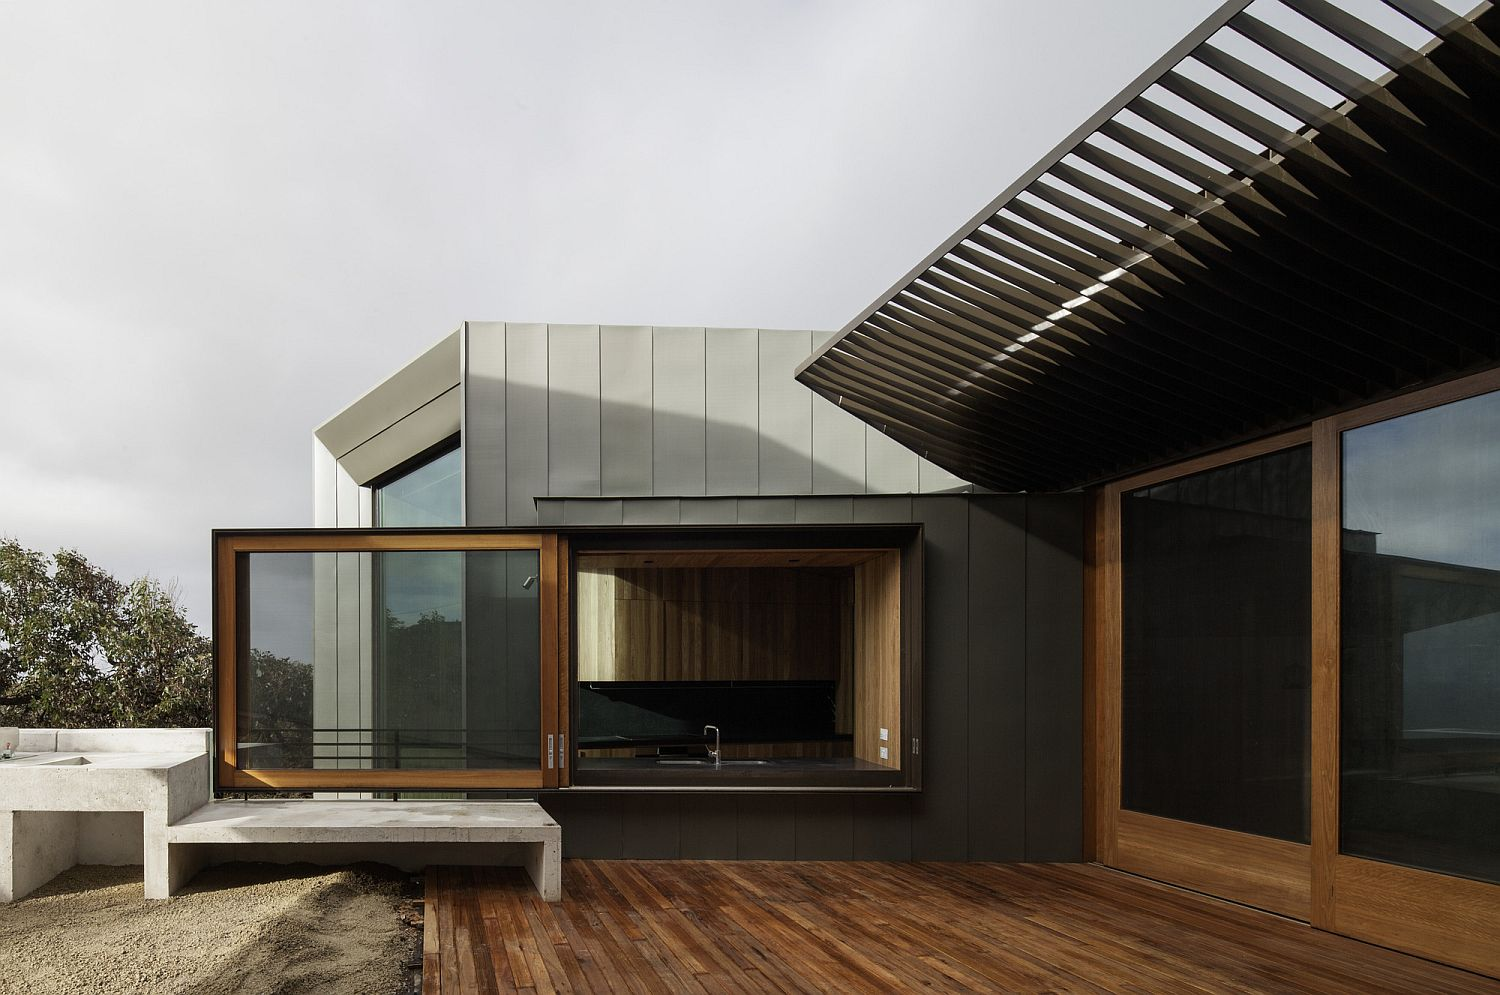 Design of the house feels like scenography with views framed beautifully